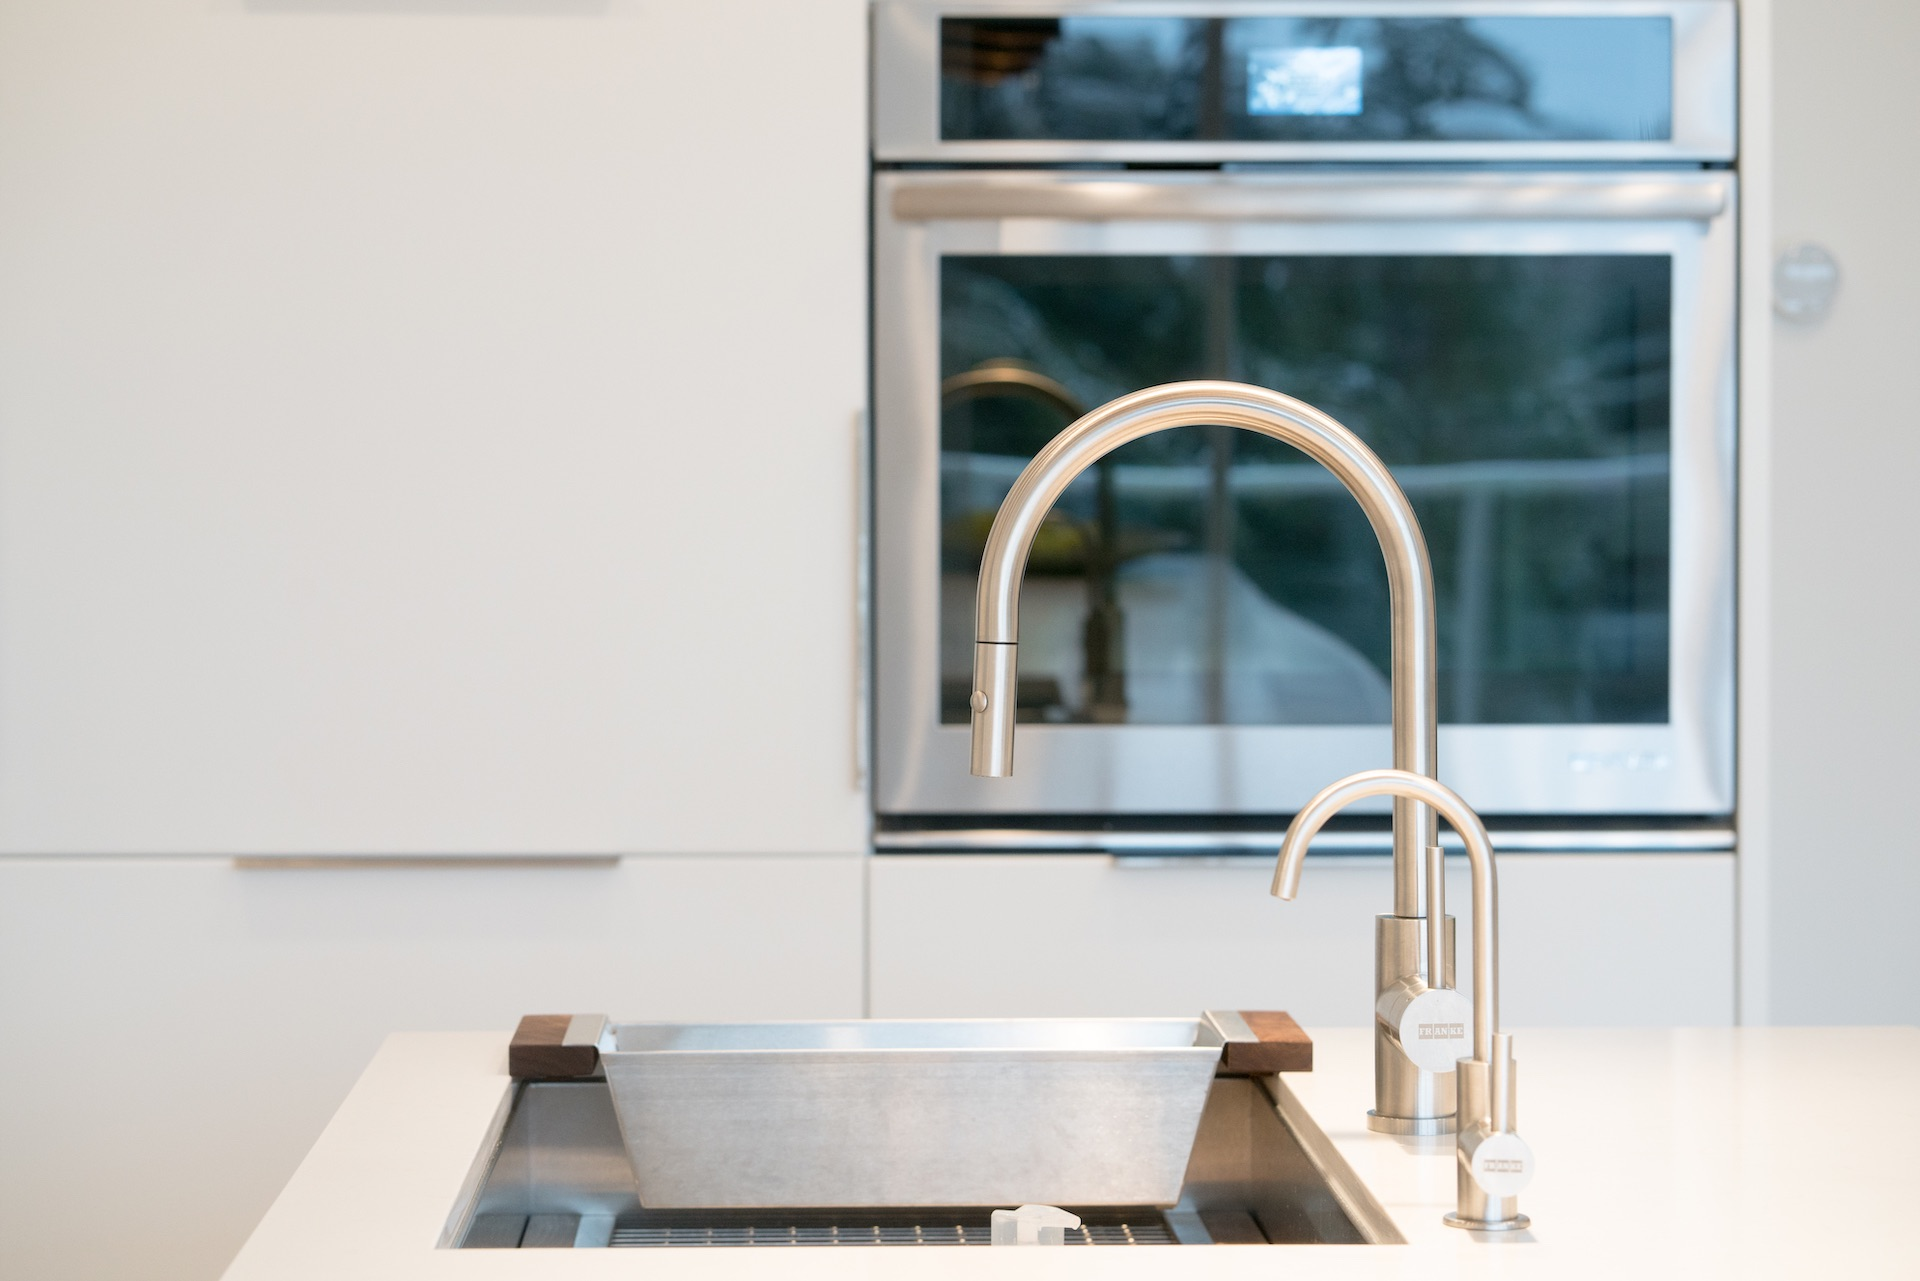 kitchen sink with silver faucet